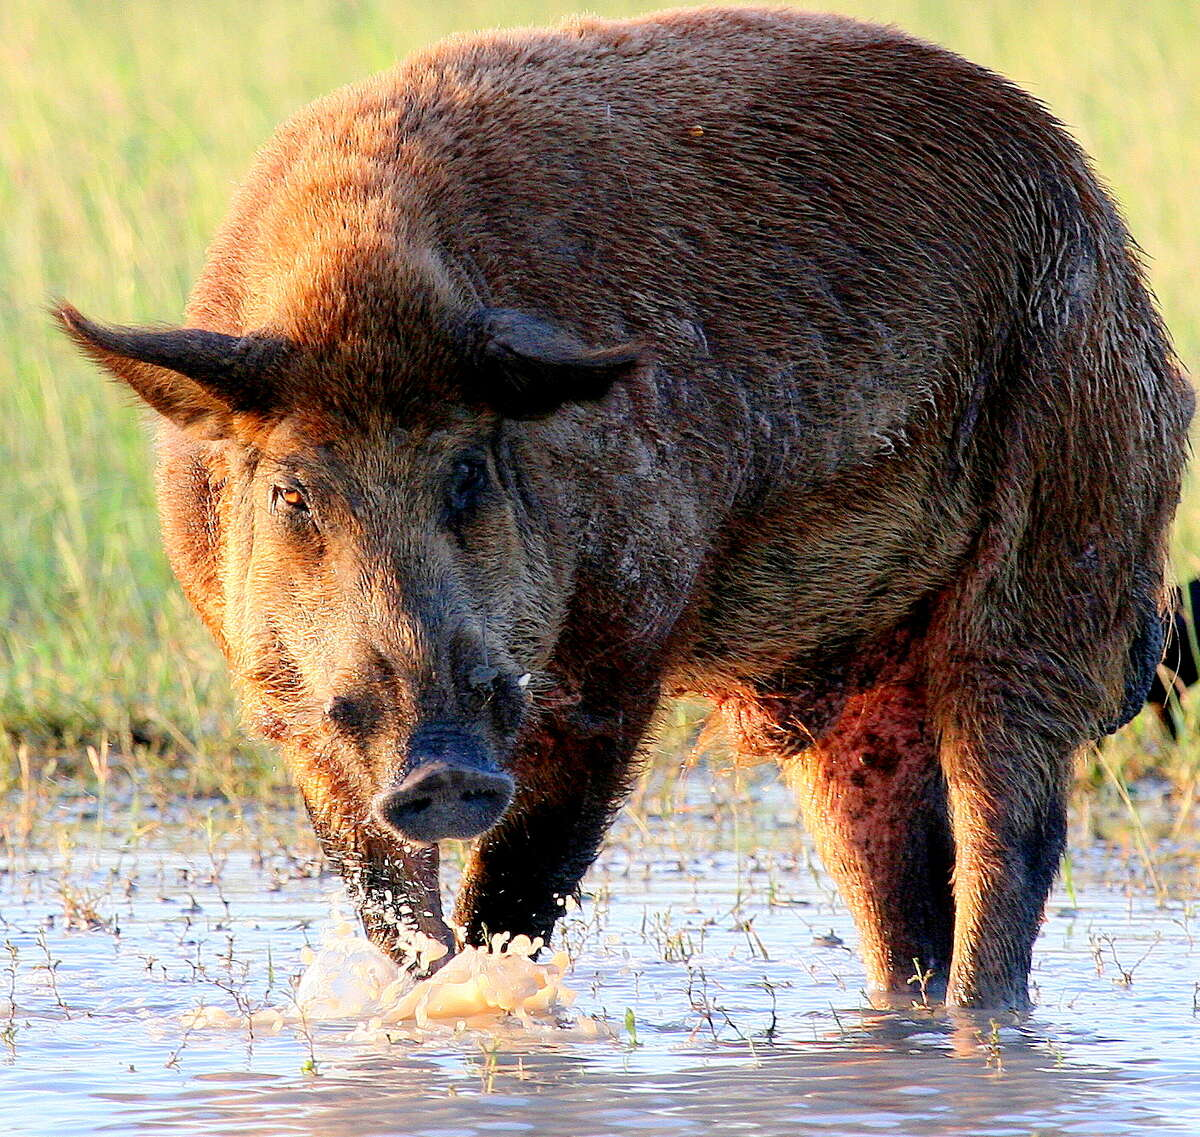 Feral hogs are as adaptable and prolific as they are destructive. Wildlife managers estimate it would take annually removing two-thirds of the pig population, estimated to be 2.6 million swine, to stabilize the population. Houston Chronicle photo by Shannon Tompkins